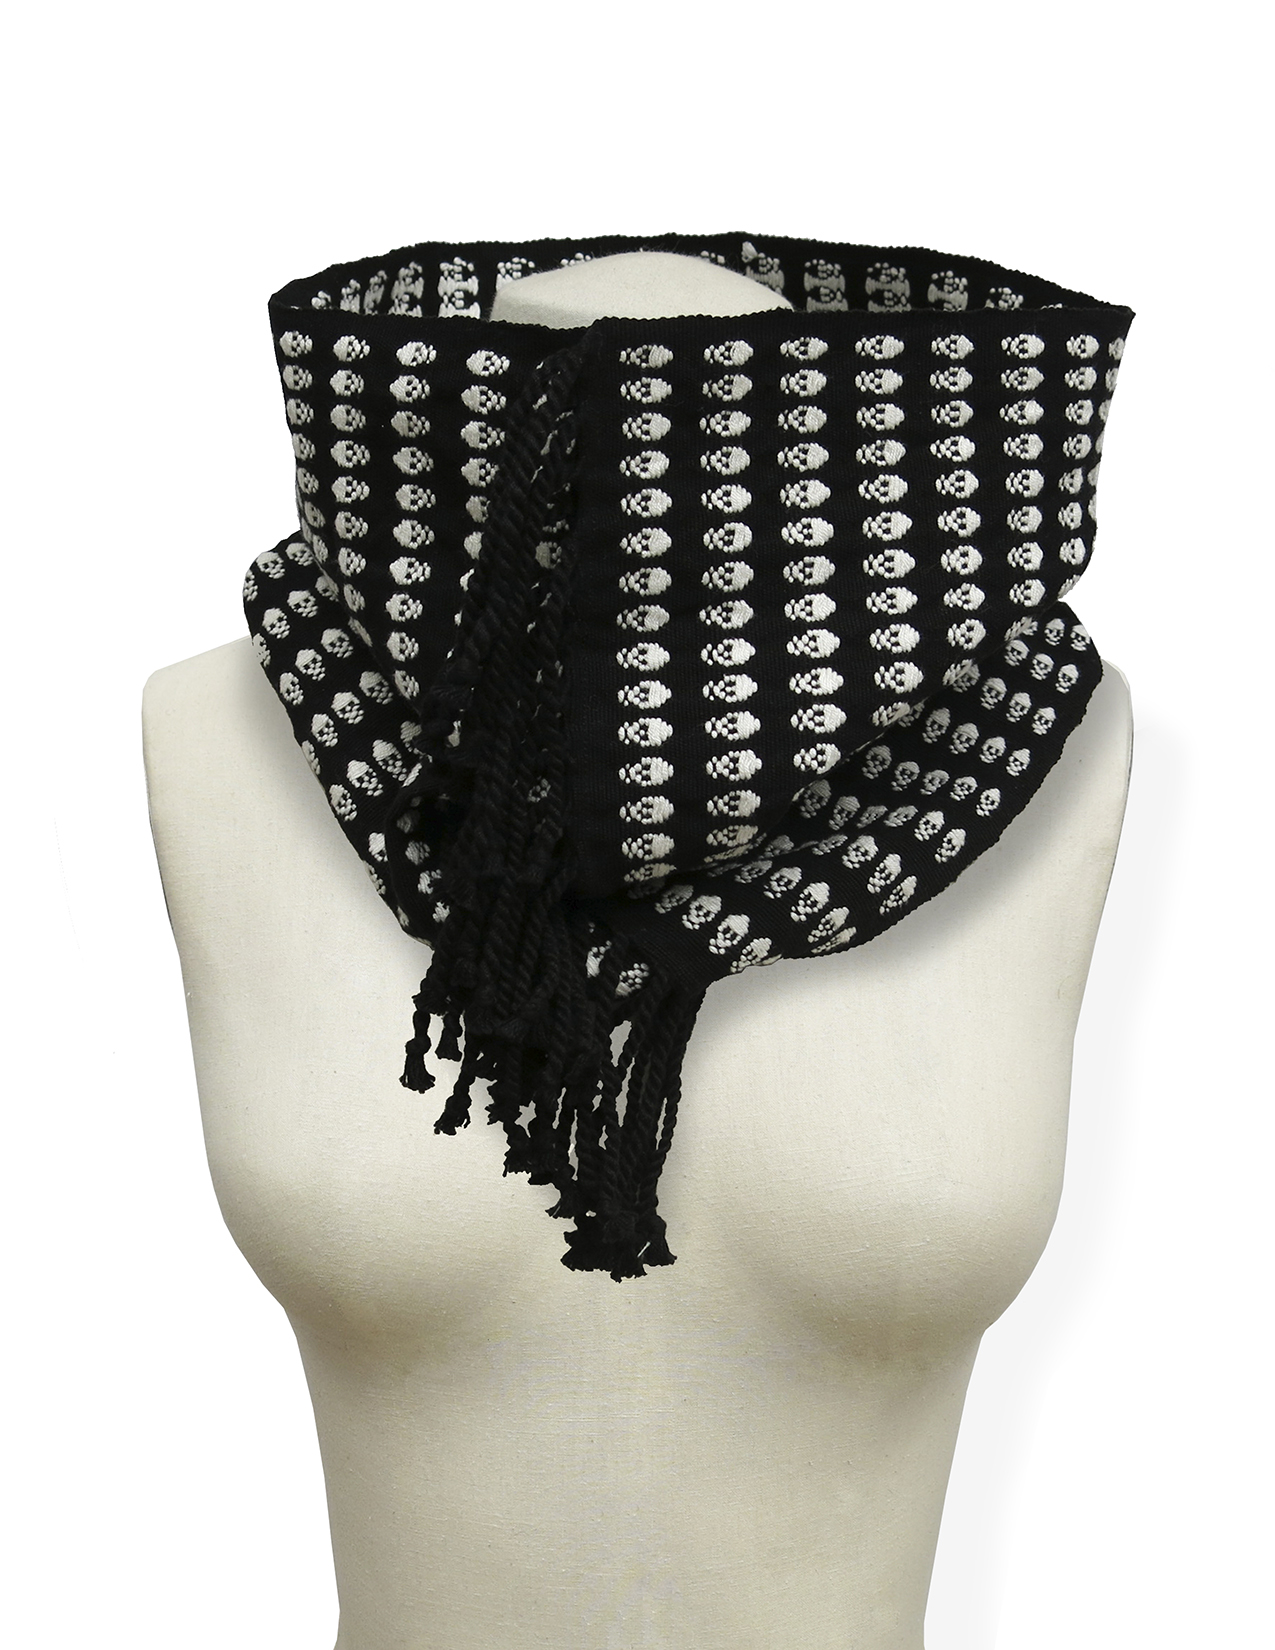 NECKPIECE - white skulls on black - handwoven - Chiapas